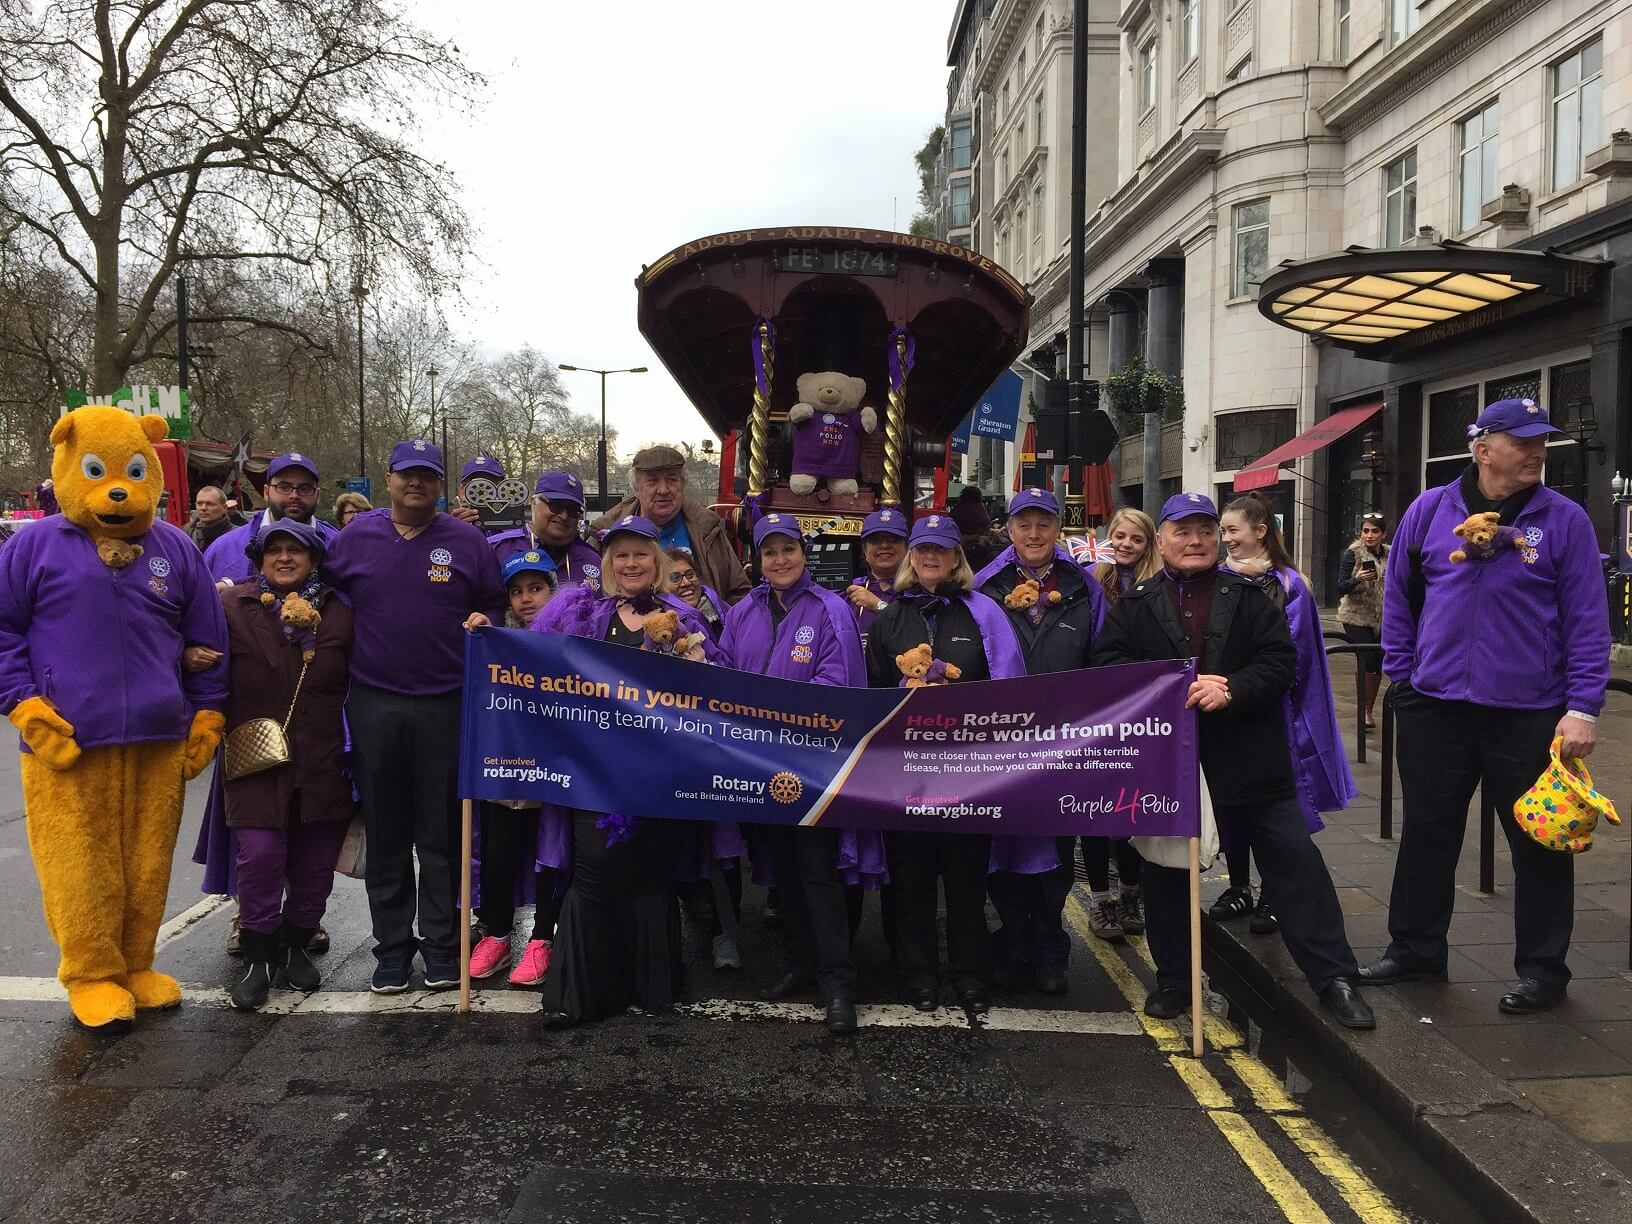 Rotary Goes Purple For The Parade